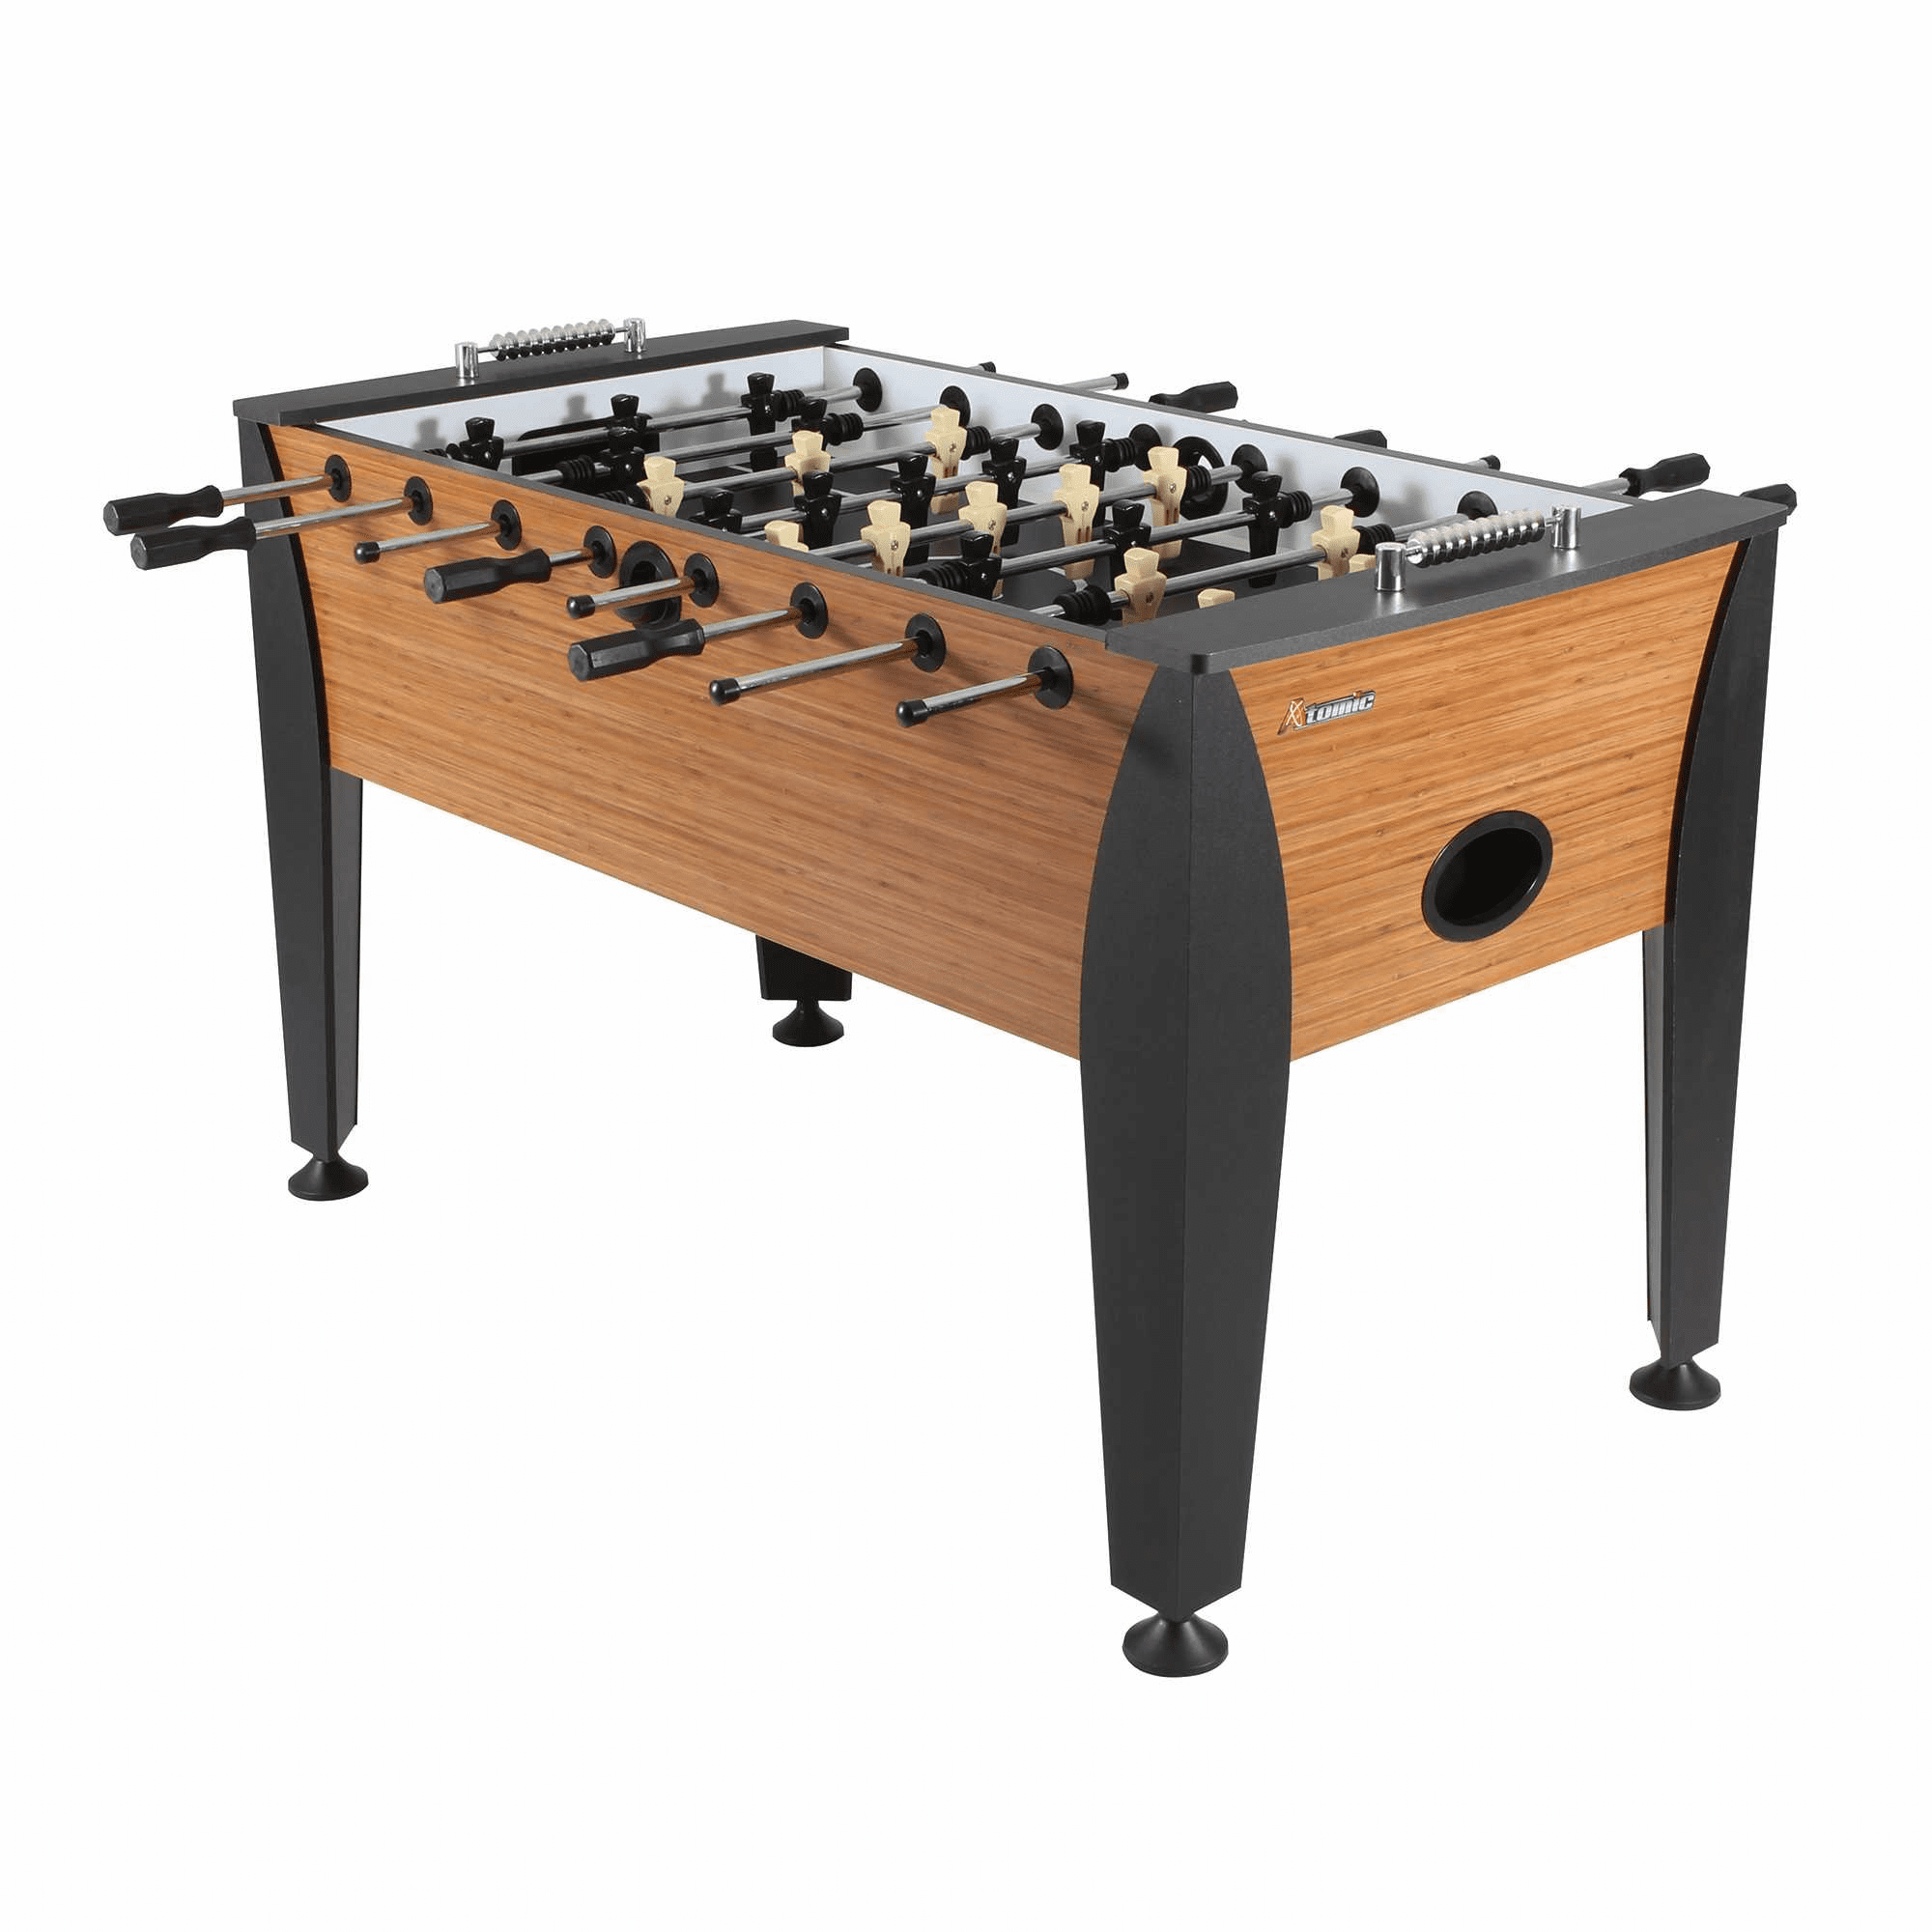 "Atomic ProForce 56"" Foosball Table by Escalade Sports"